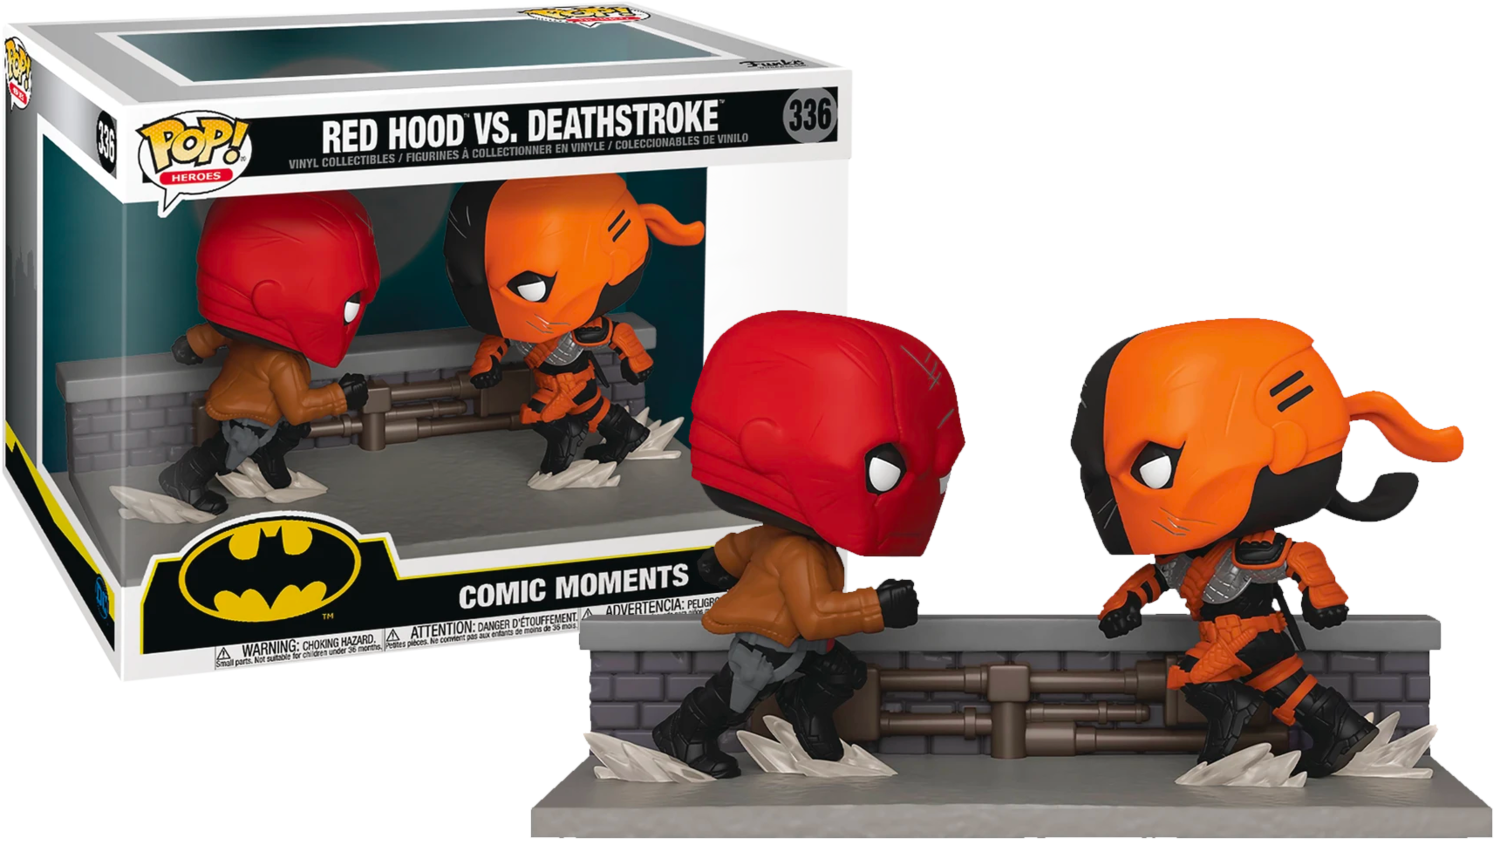 Deathstroke - Red Hood vs Deathstroke Comic Moments Exclusive Pop! Vinyl Figure 2-Pack